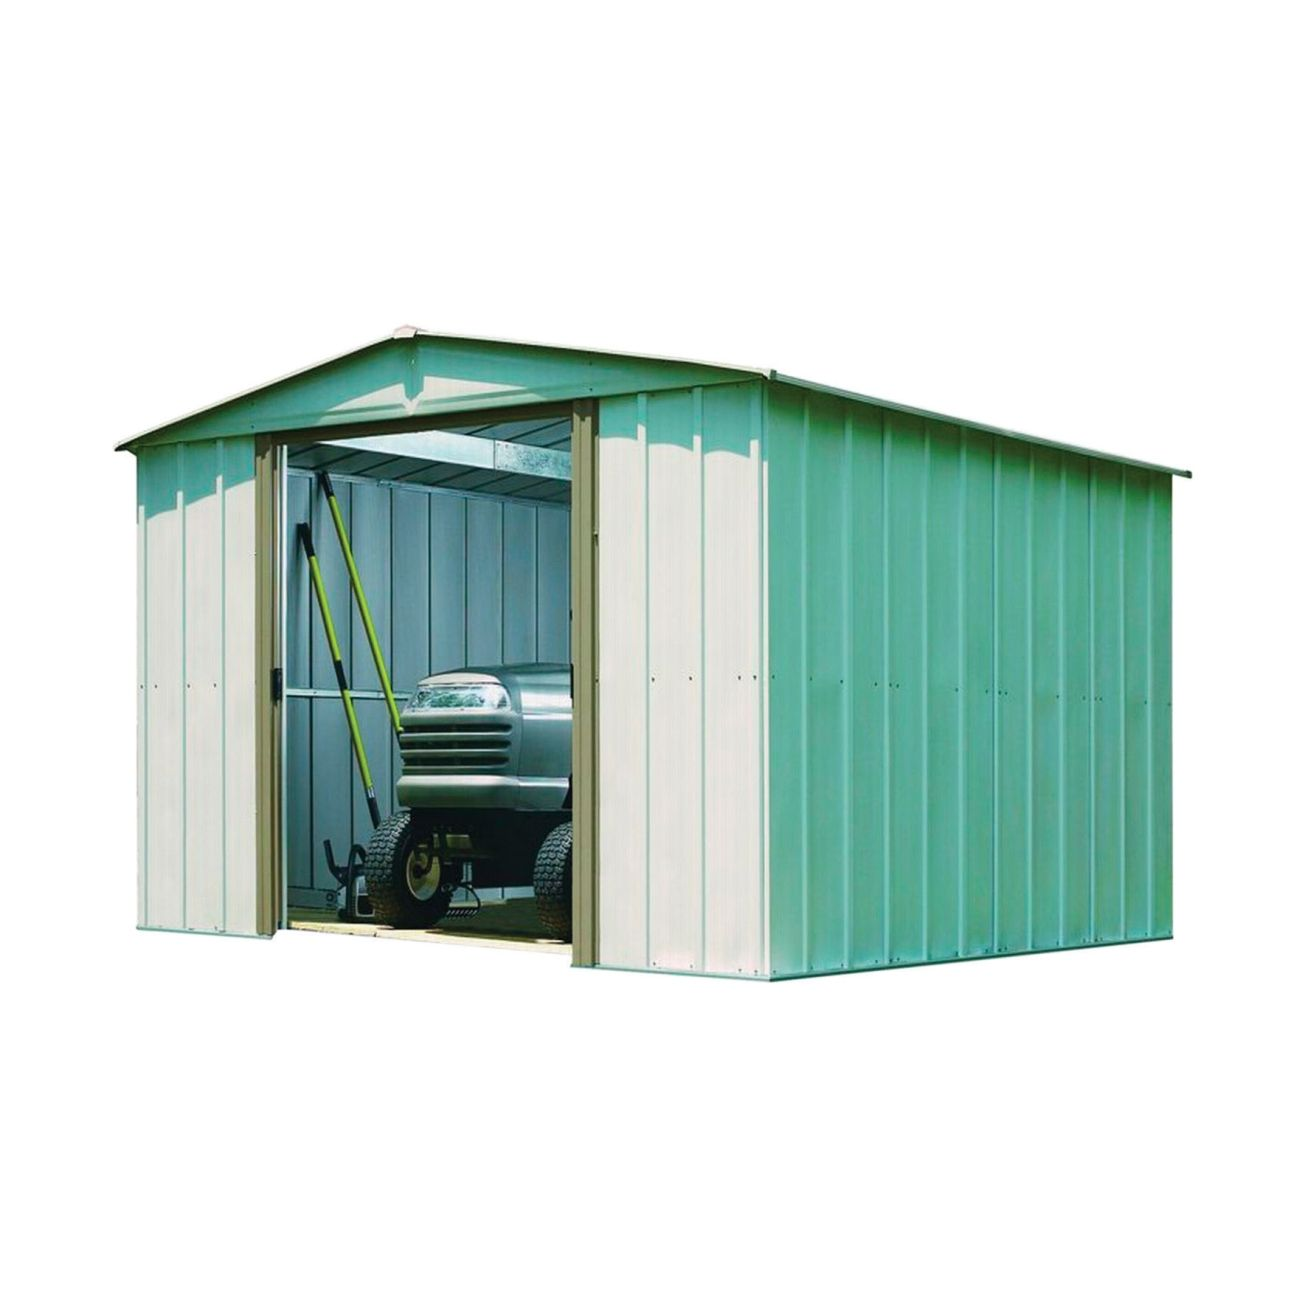 12x16 Run In Shed Plans And Pics Of 10x10 Storage Shed Plans Free 55267297 Sheds Shedhouseplans Gardens Shed Design Building A Shed Outdoor Storage Sheds